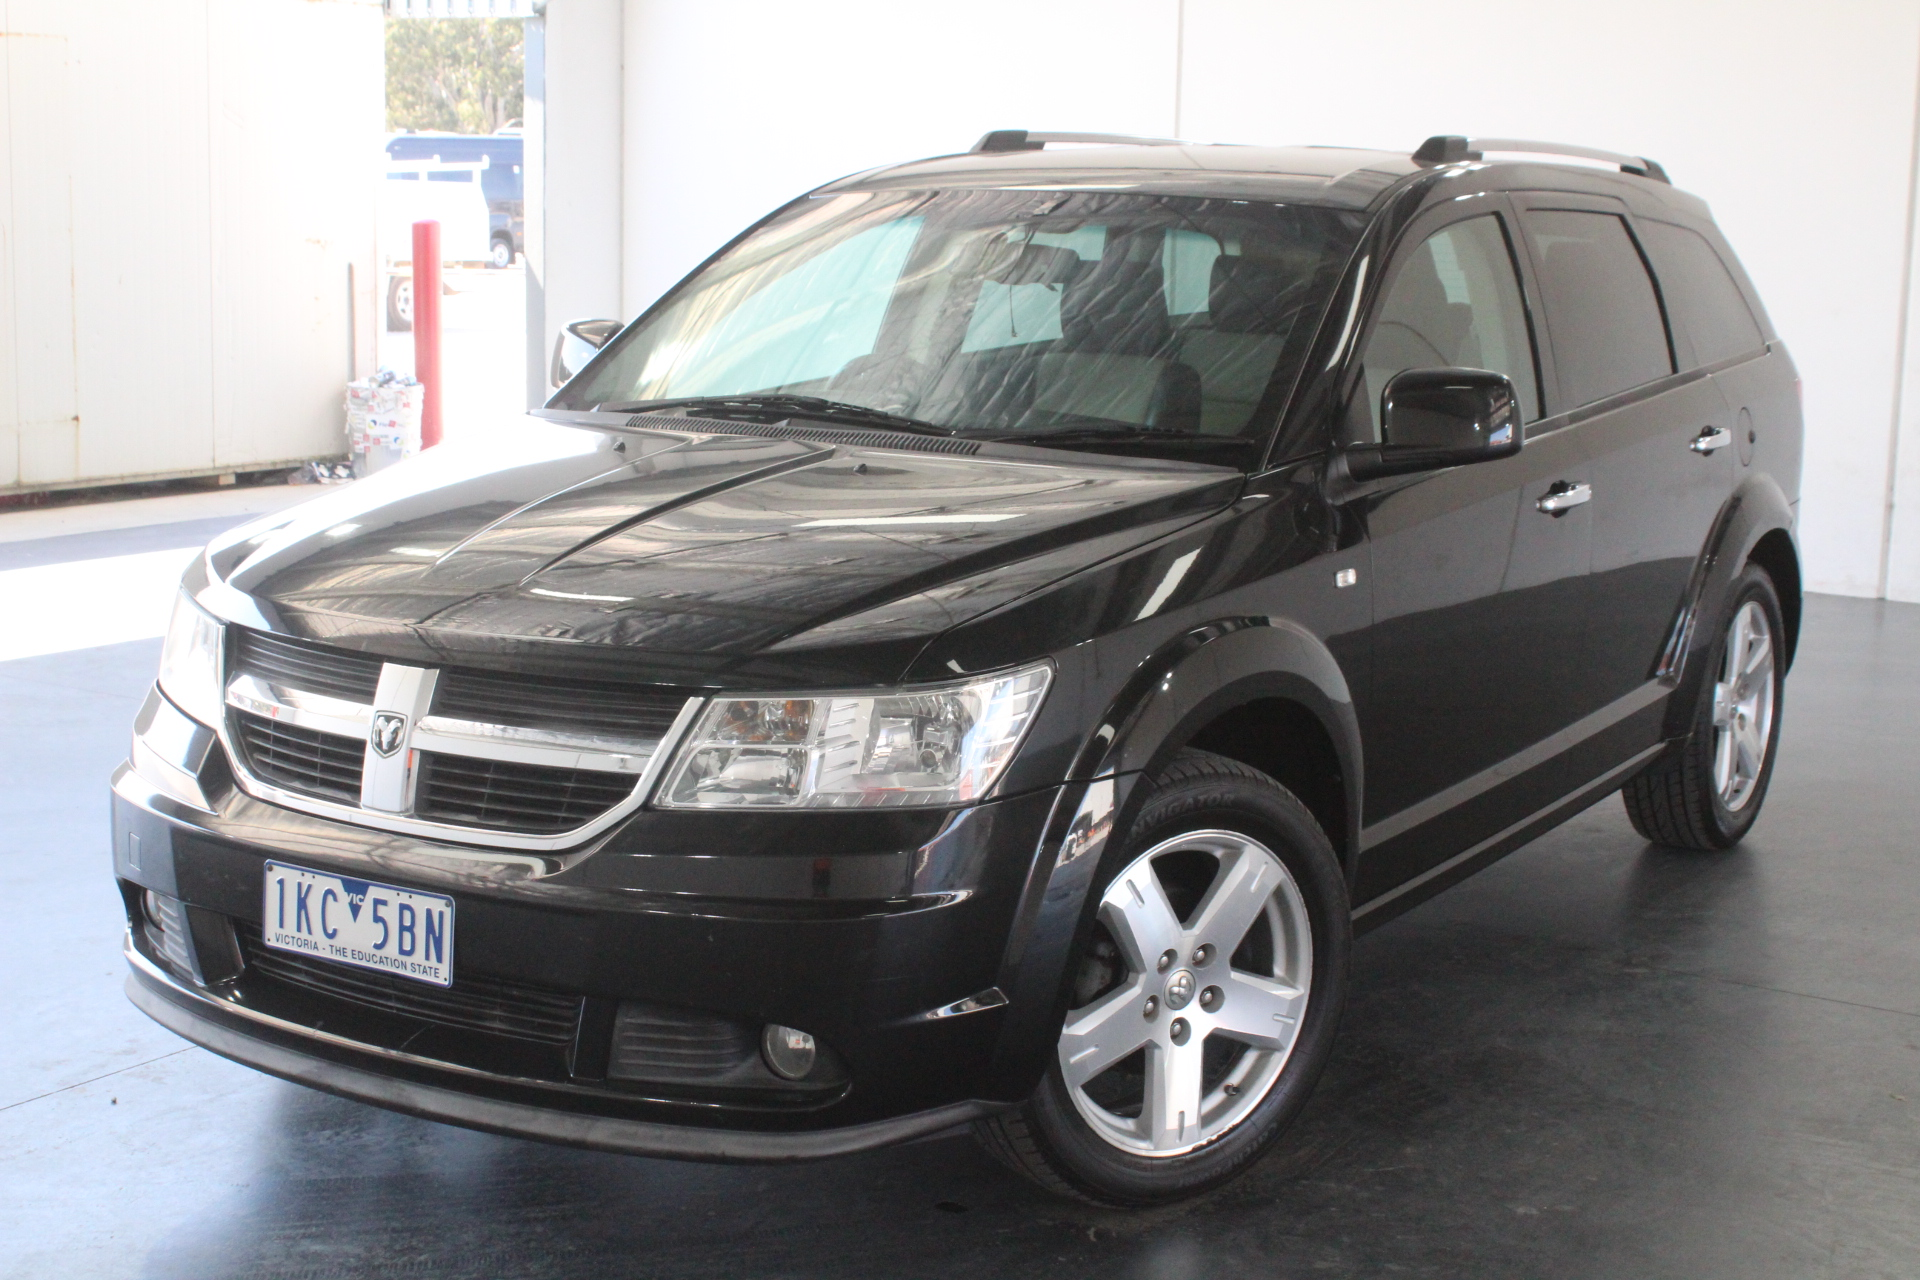 2009 Dodge Journey R/T CRD Turbo Diesel Automatic 7 Seats People Mover